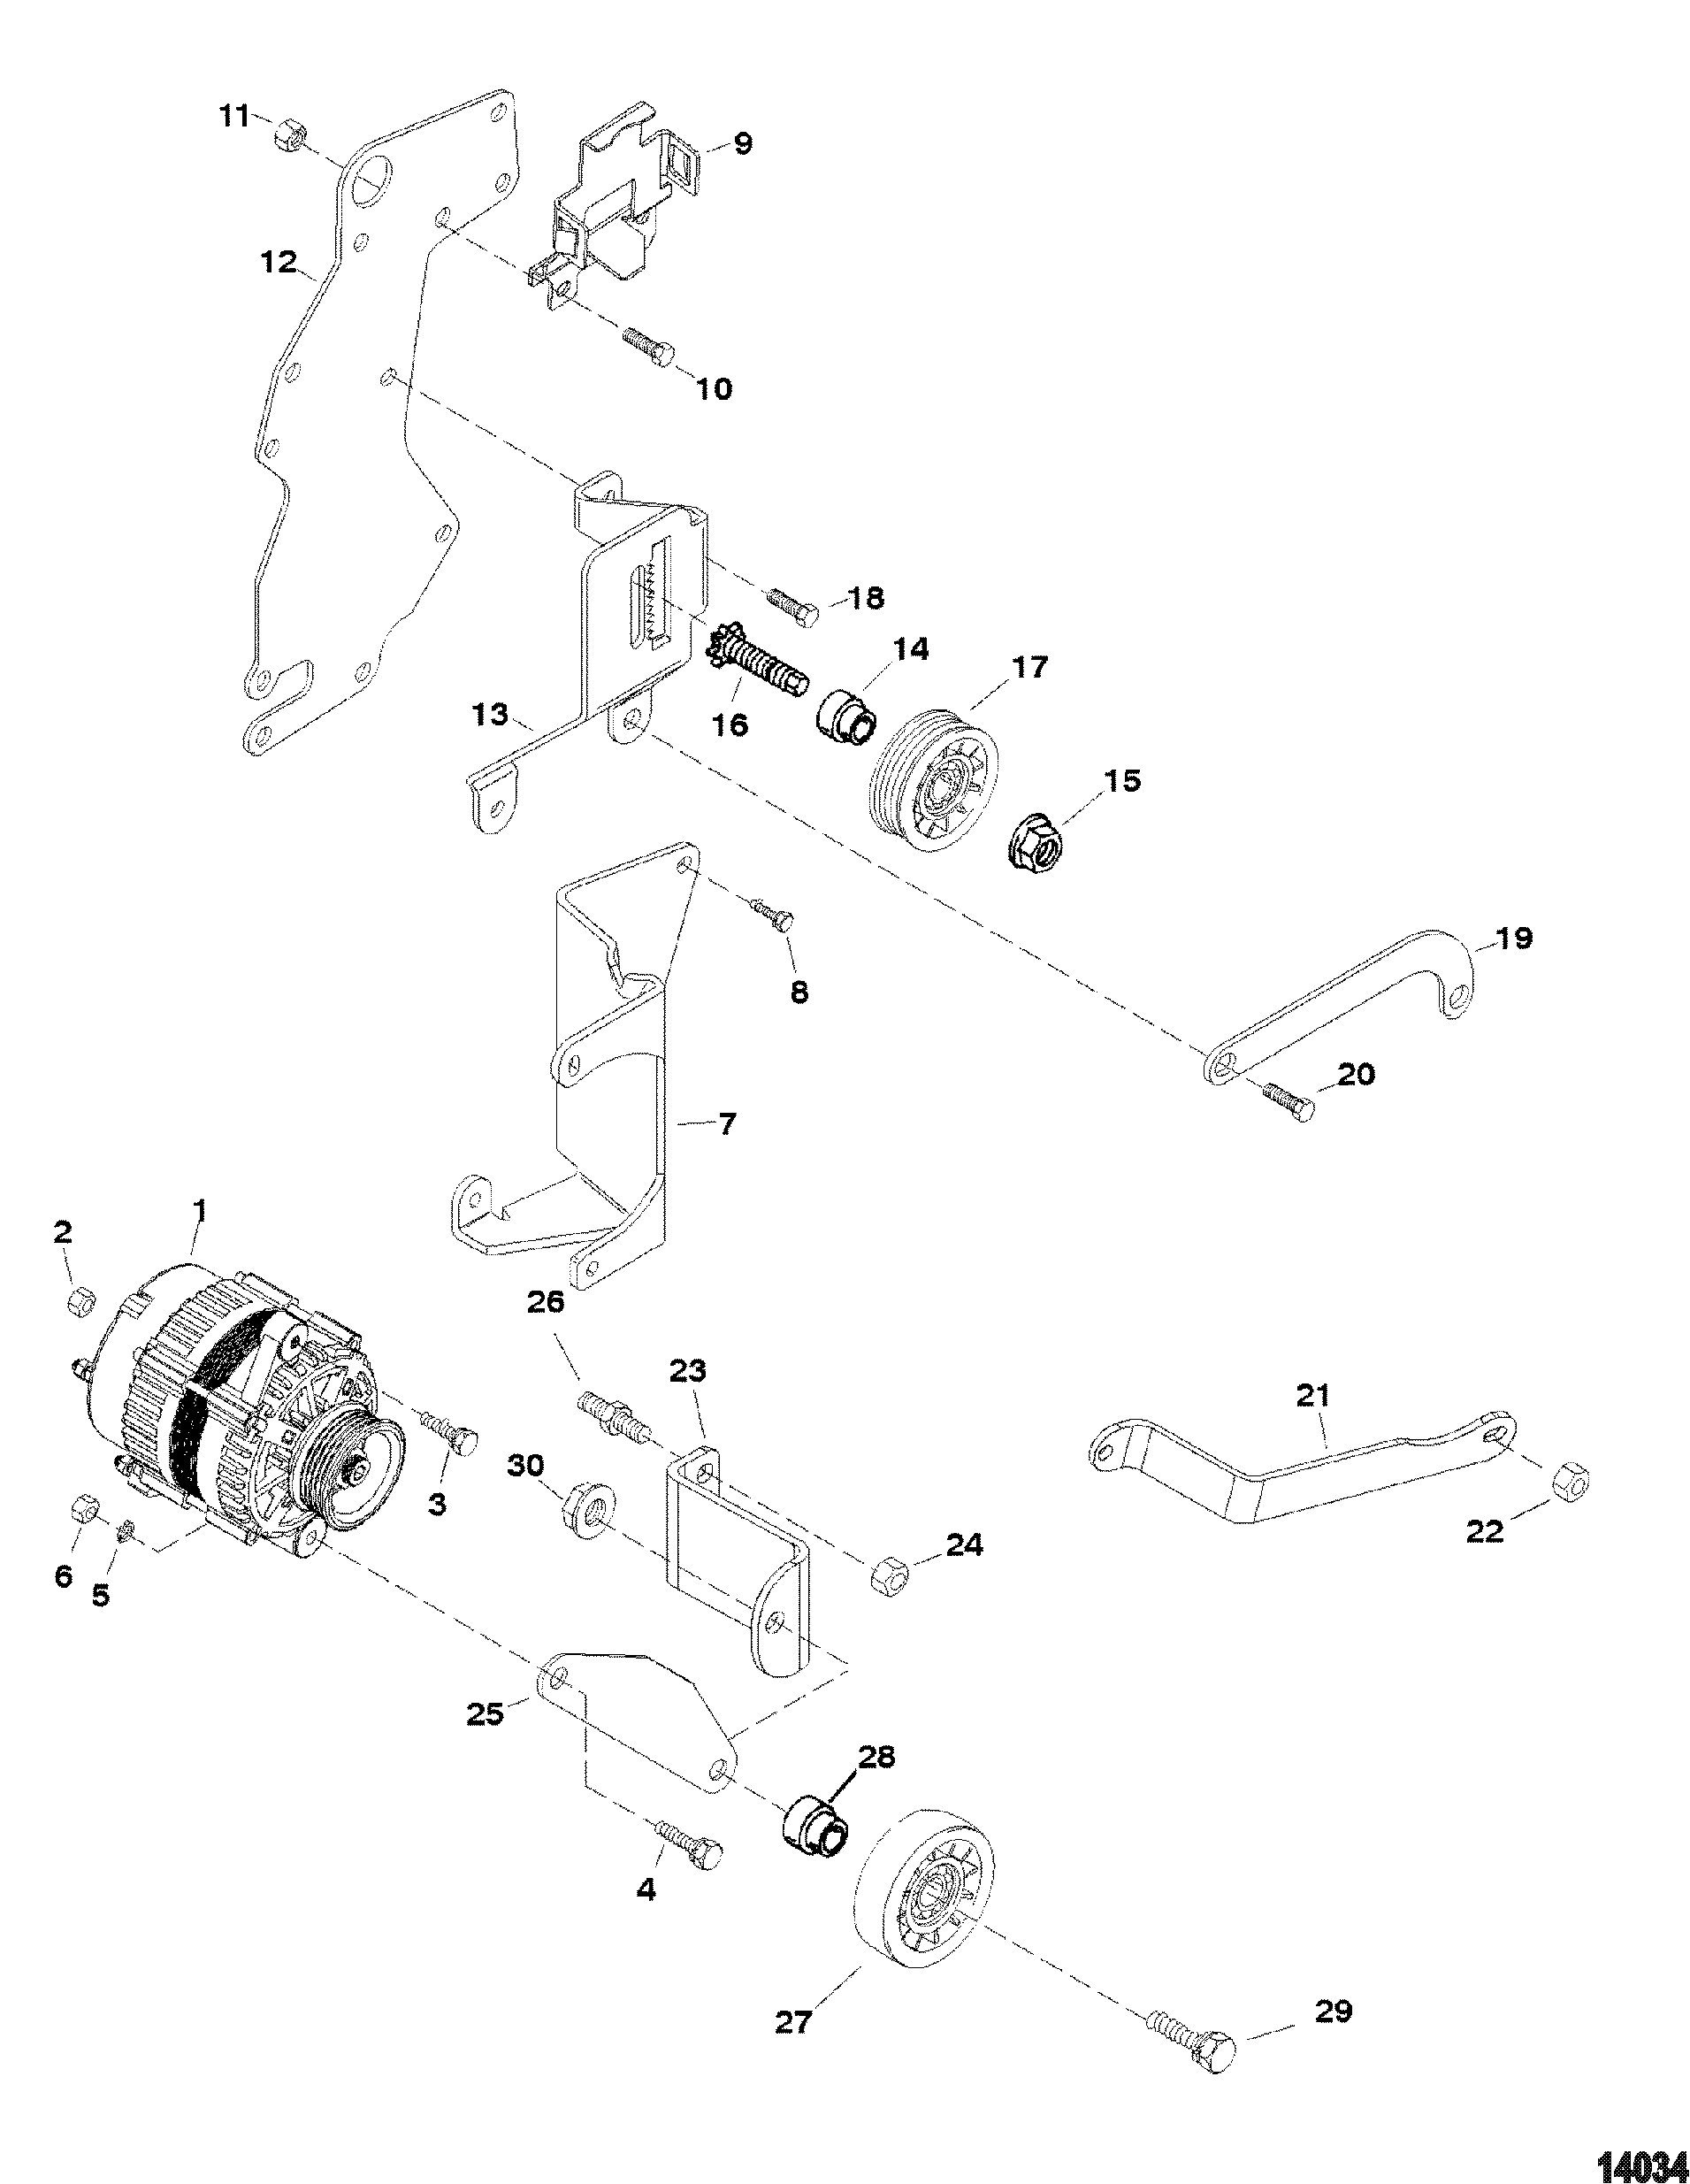 Alternator And Brackets Delco FOR MERCRUISER 4.3L ALPHA